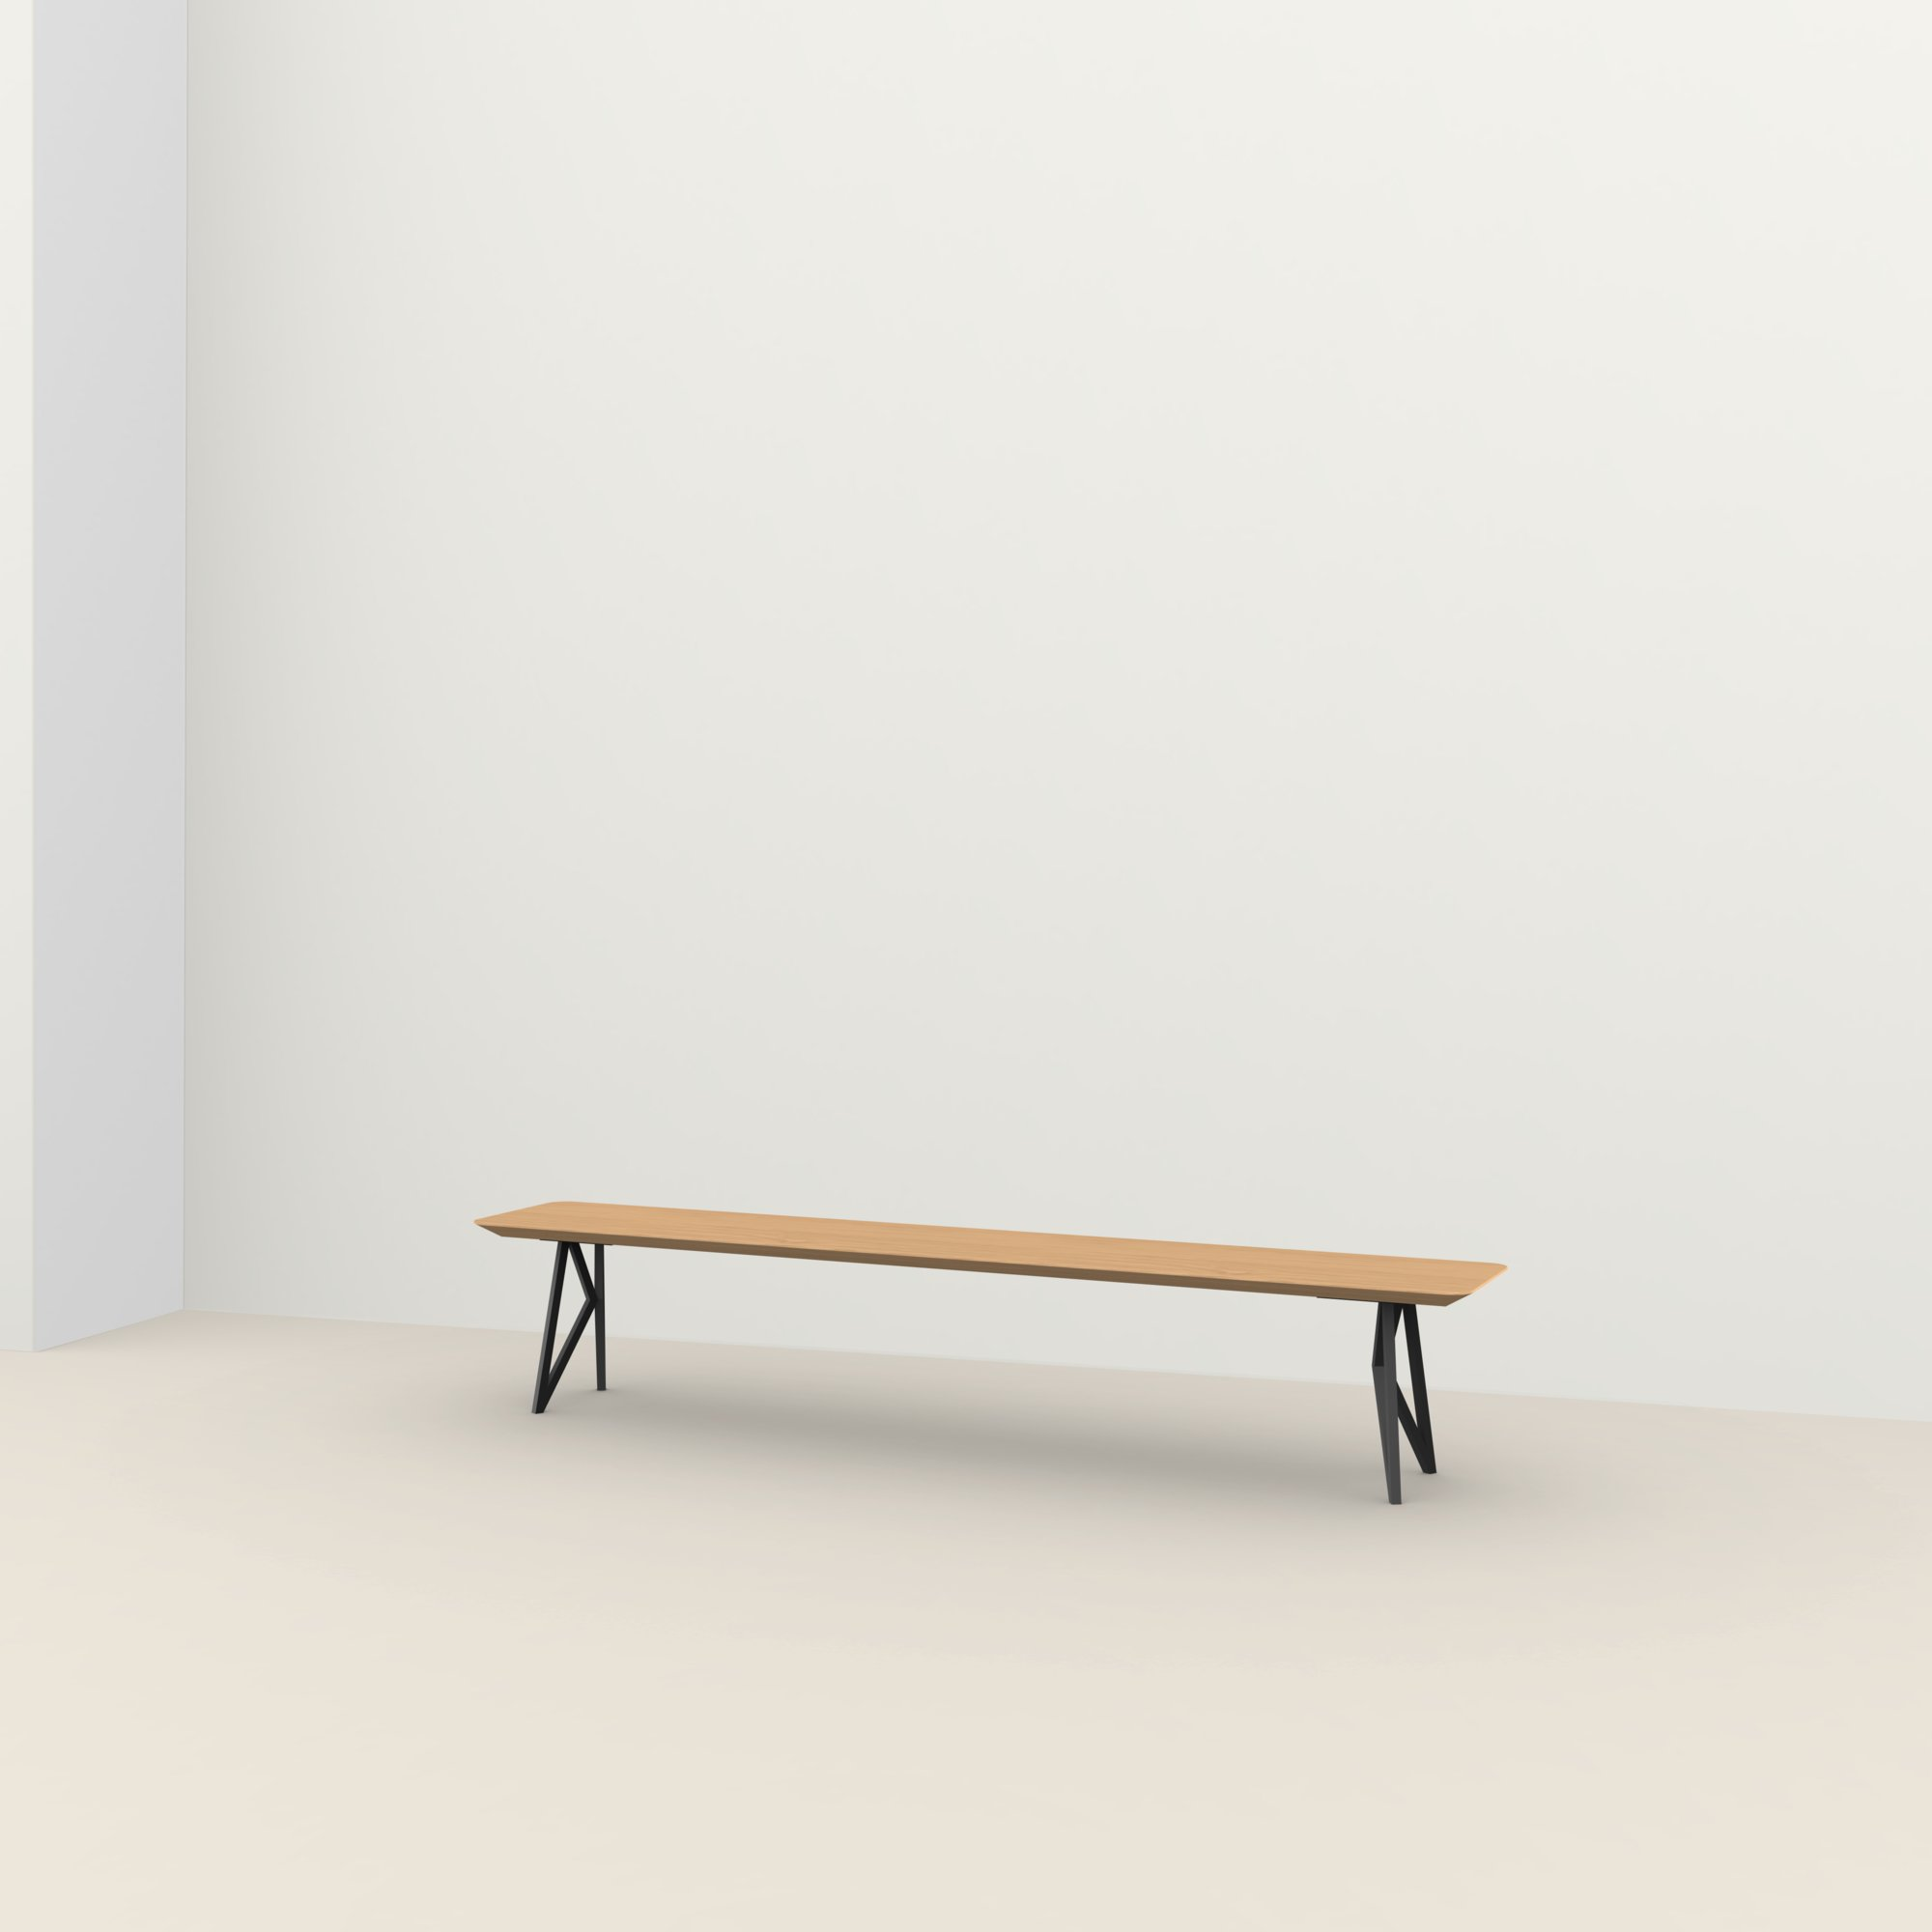 eettafelbank op maat | Butterfly Bench Steel black powdercoating | Oak hardwax oil natural light 3041 | Studio HENK |